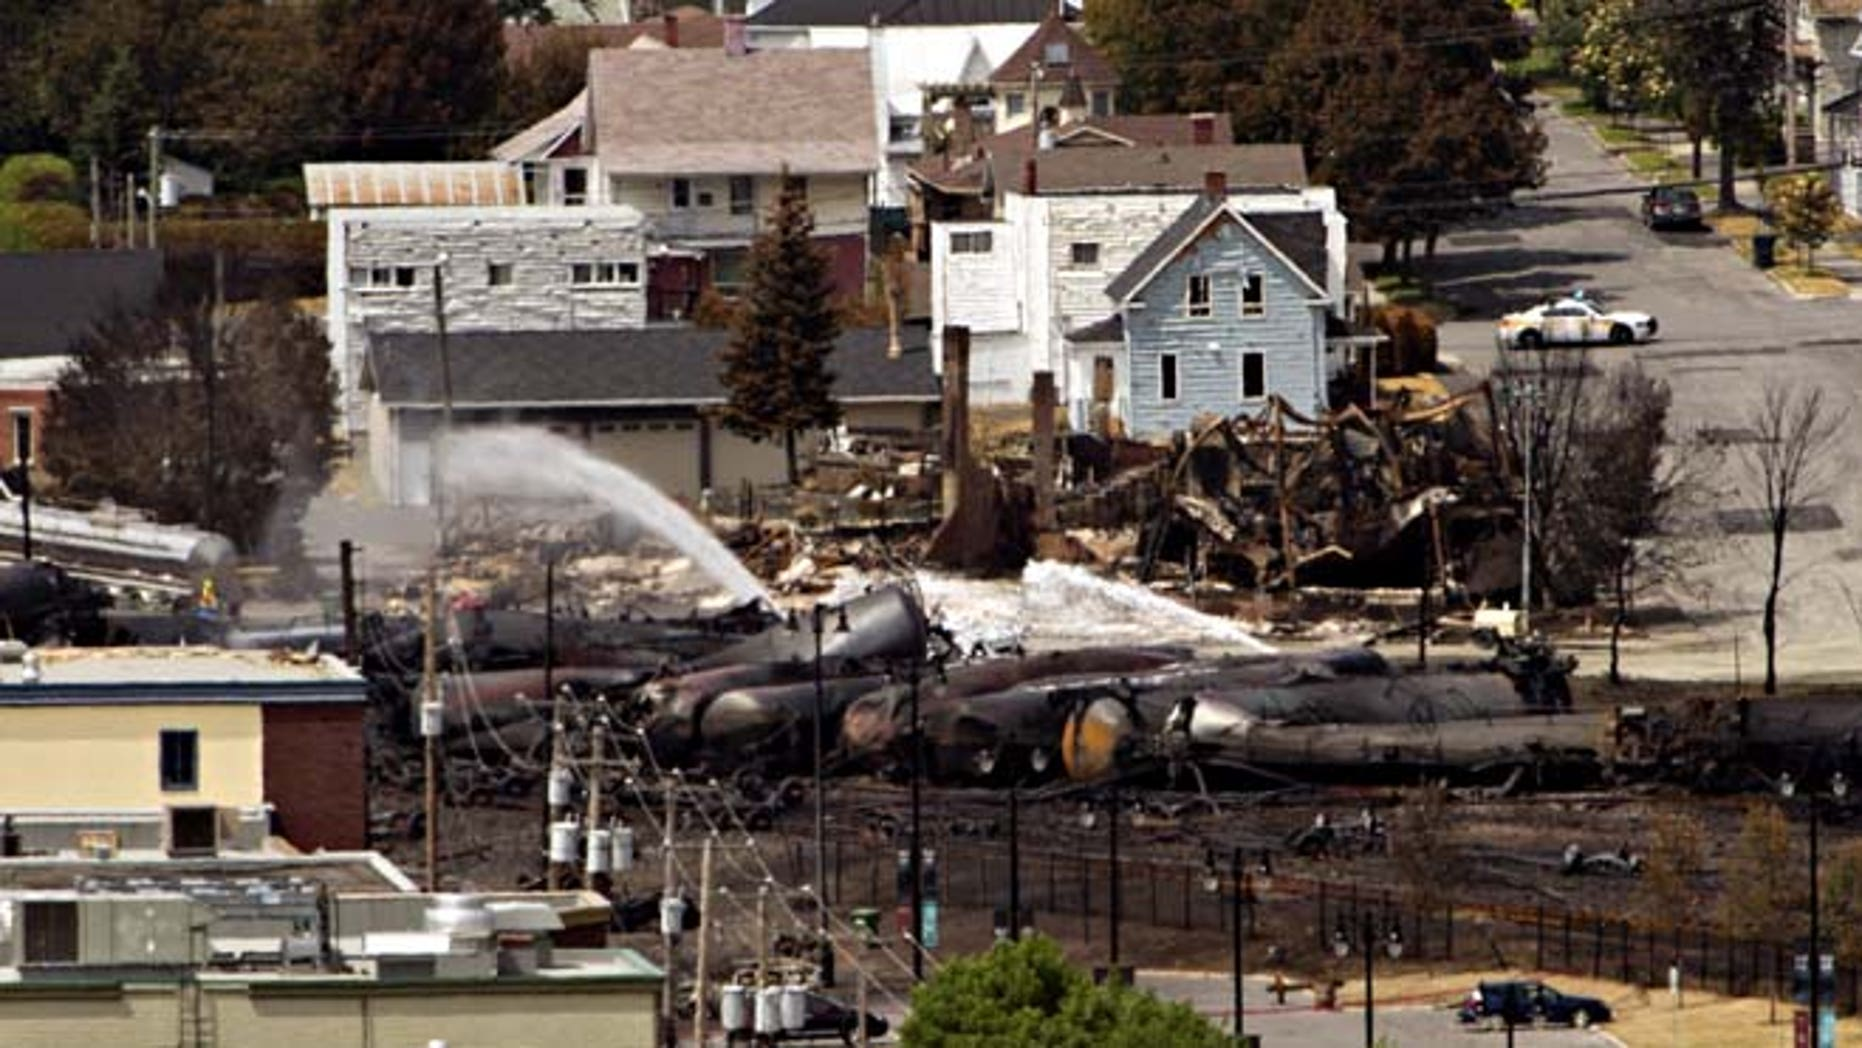 July 8, 2013: Wreckage is strewn through the downtown core in Lac-Megantic, Quebec after a train derailed, igniting tanker cars carrying crude oil early Saturday.